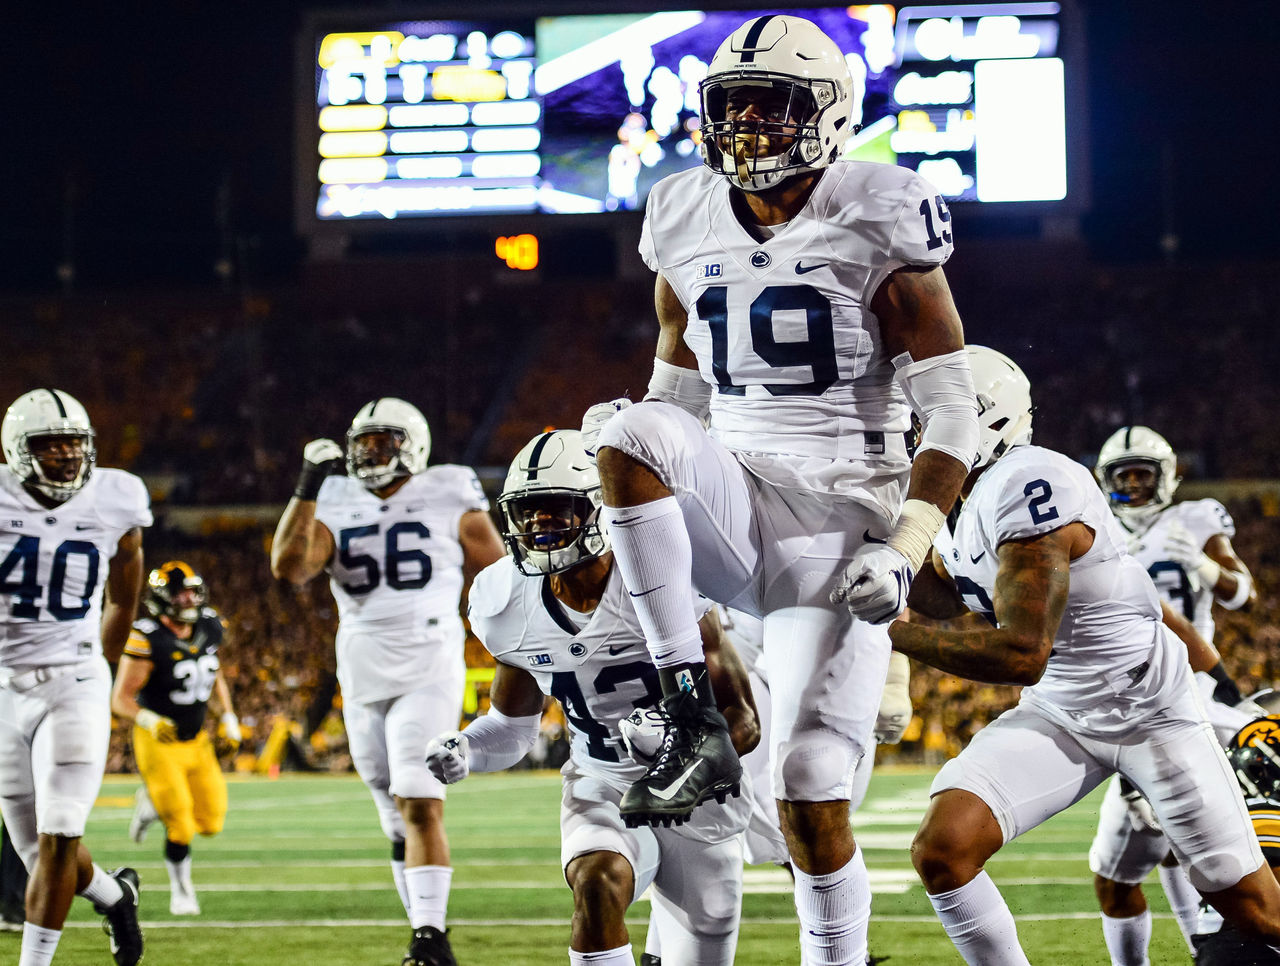 Cropped 2017 09 24t015149z 658117450 nocid rtrmadp 3 ncaa football penn state at iowa